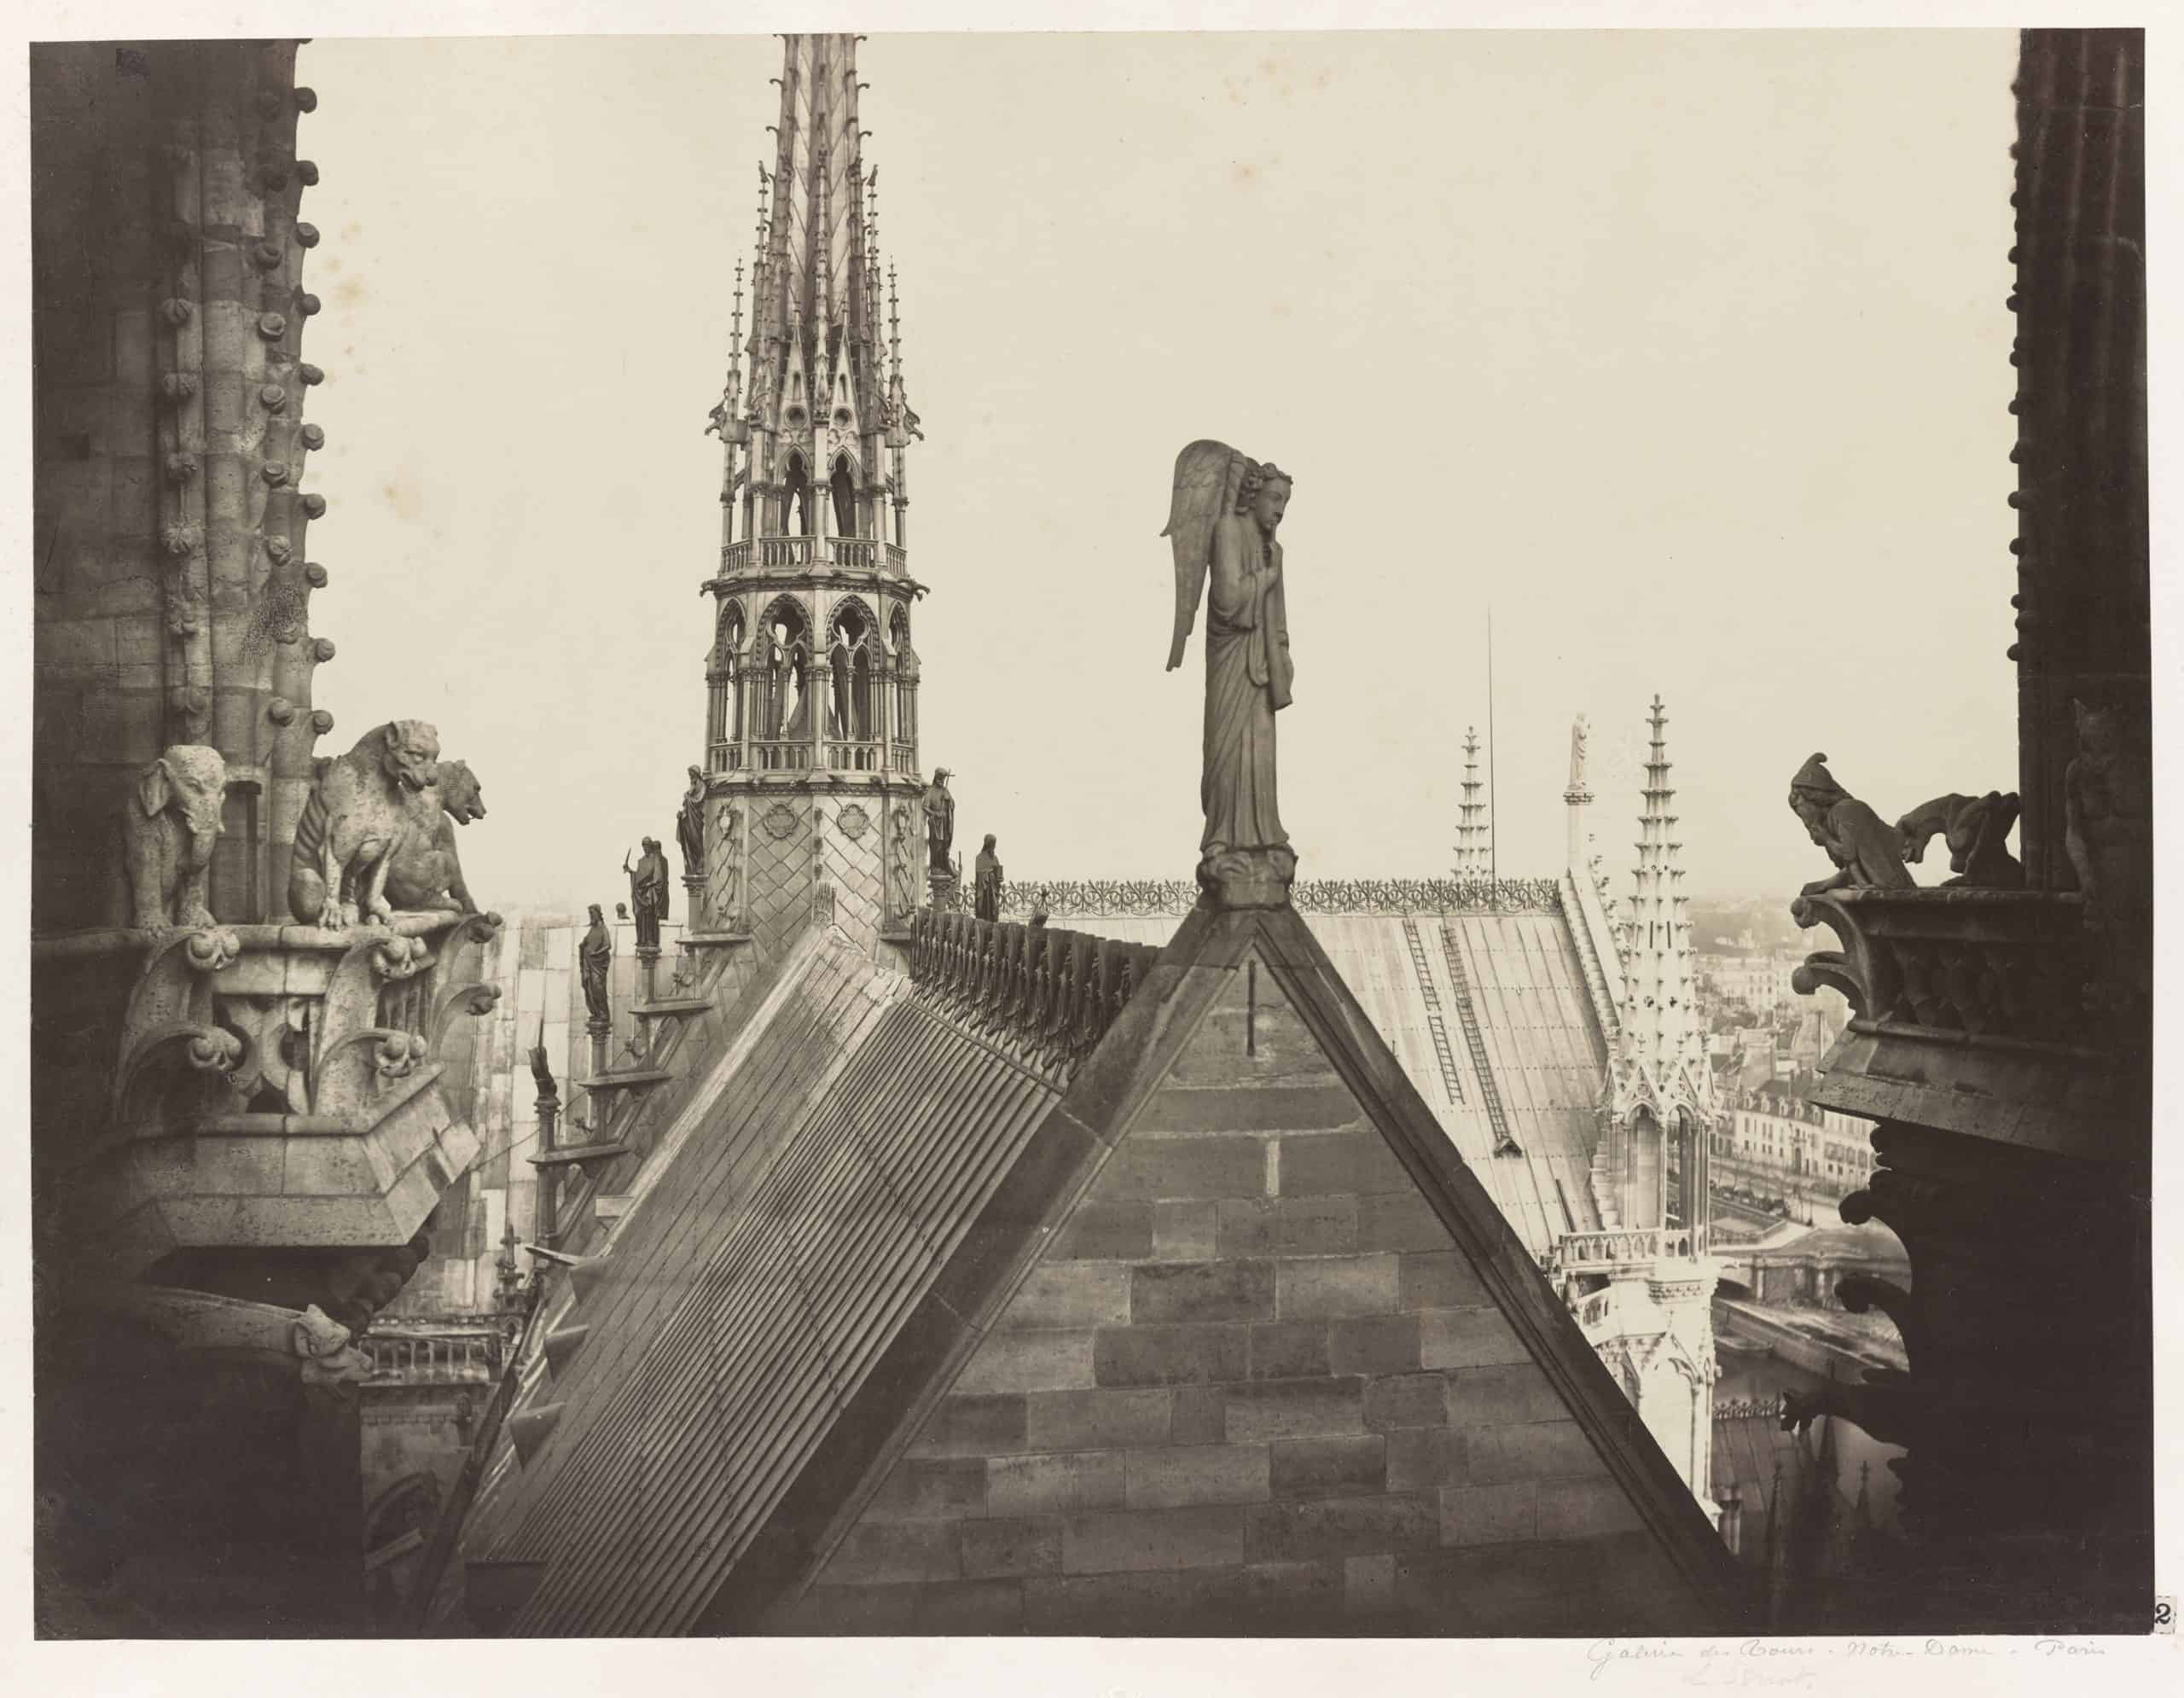 Notre Dame, Paris, France. View from spire of roofs, statuary, and gable. Photograph showing the statuary decorating the gables, roofs, and spires of Notre Dame. Charles Marville, 1860